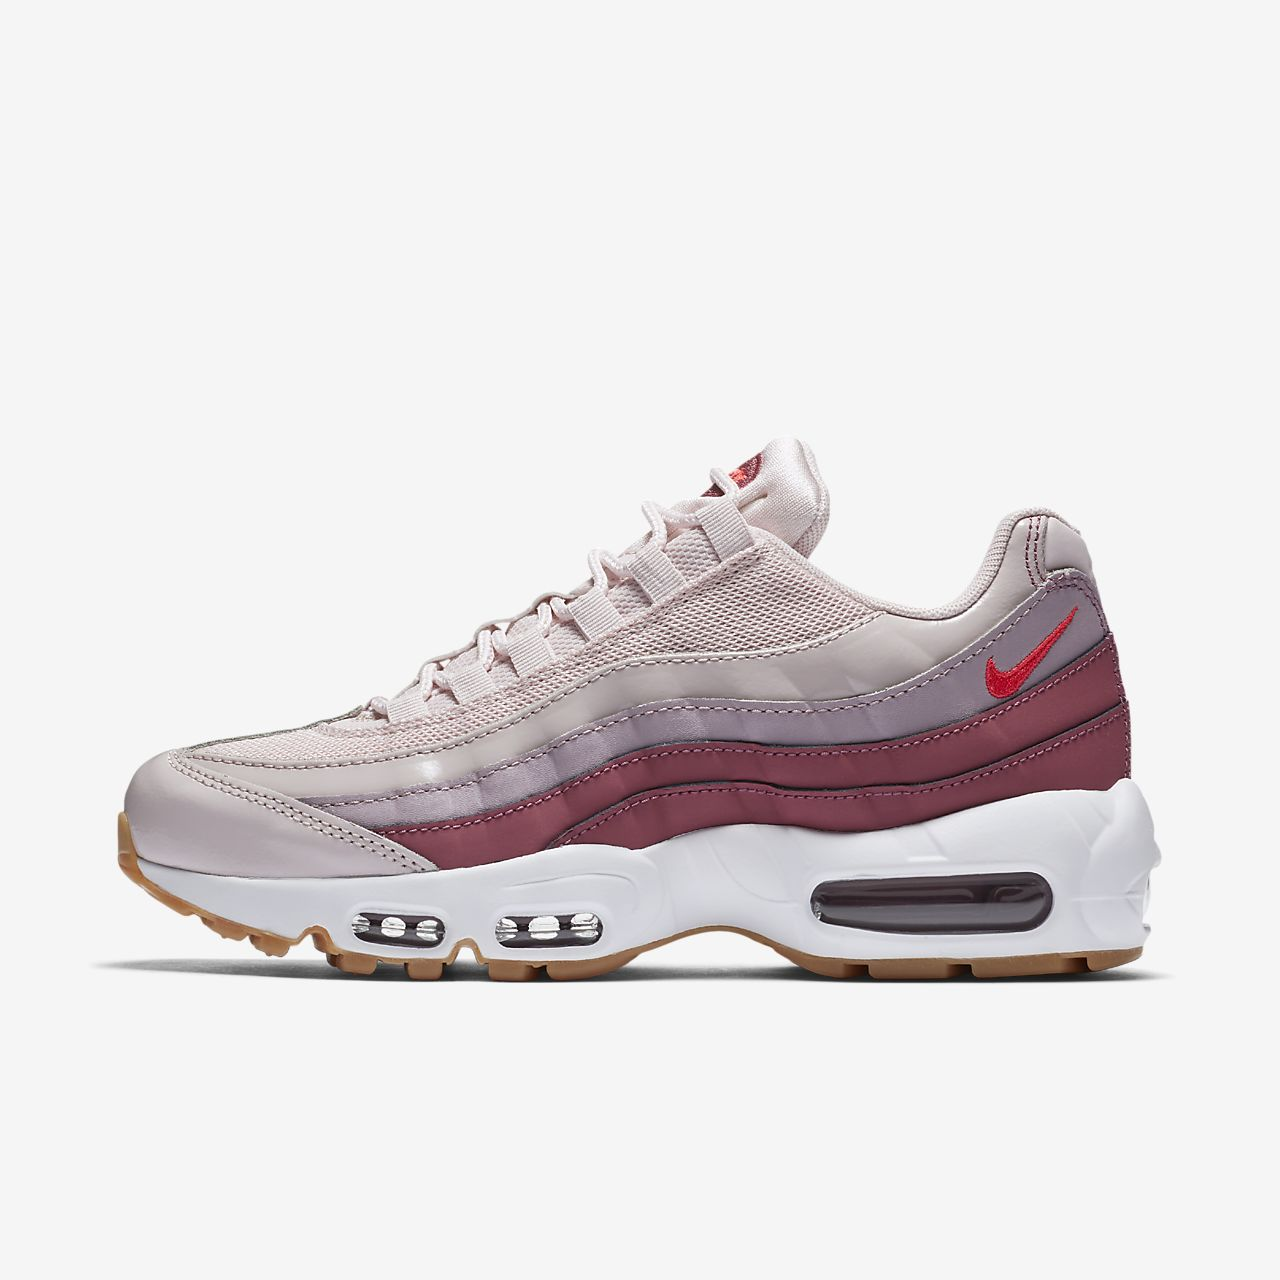 uk availability a7f97 84d8d air max 95 noir et or